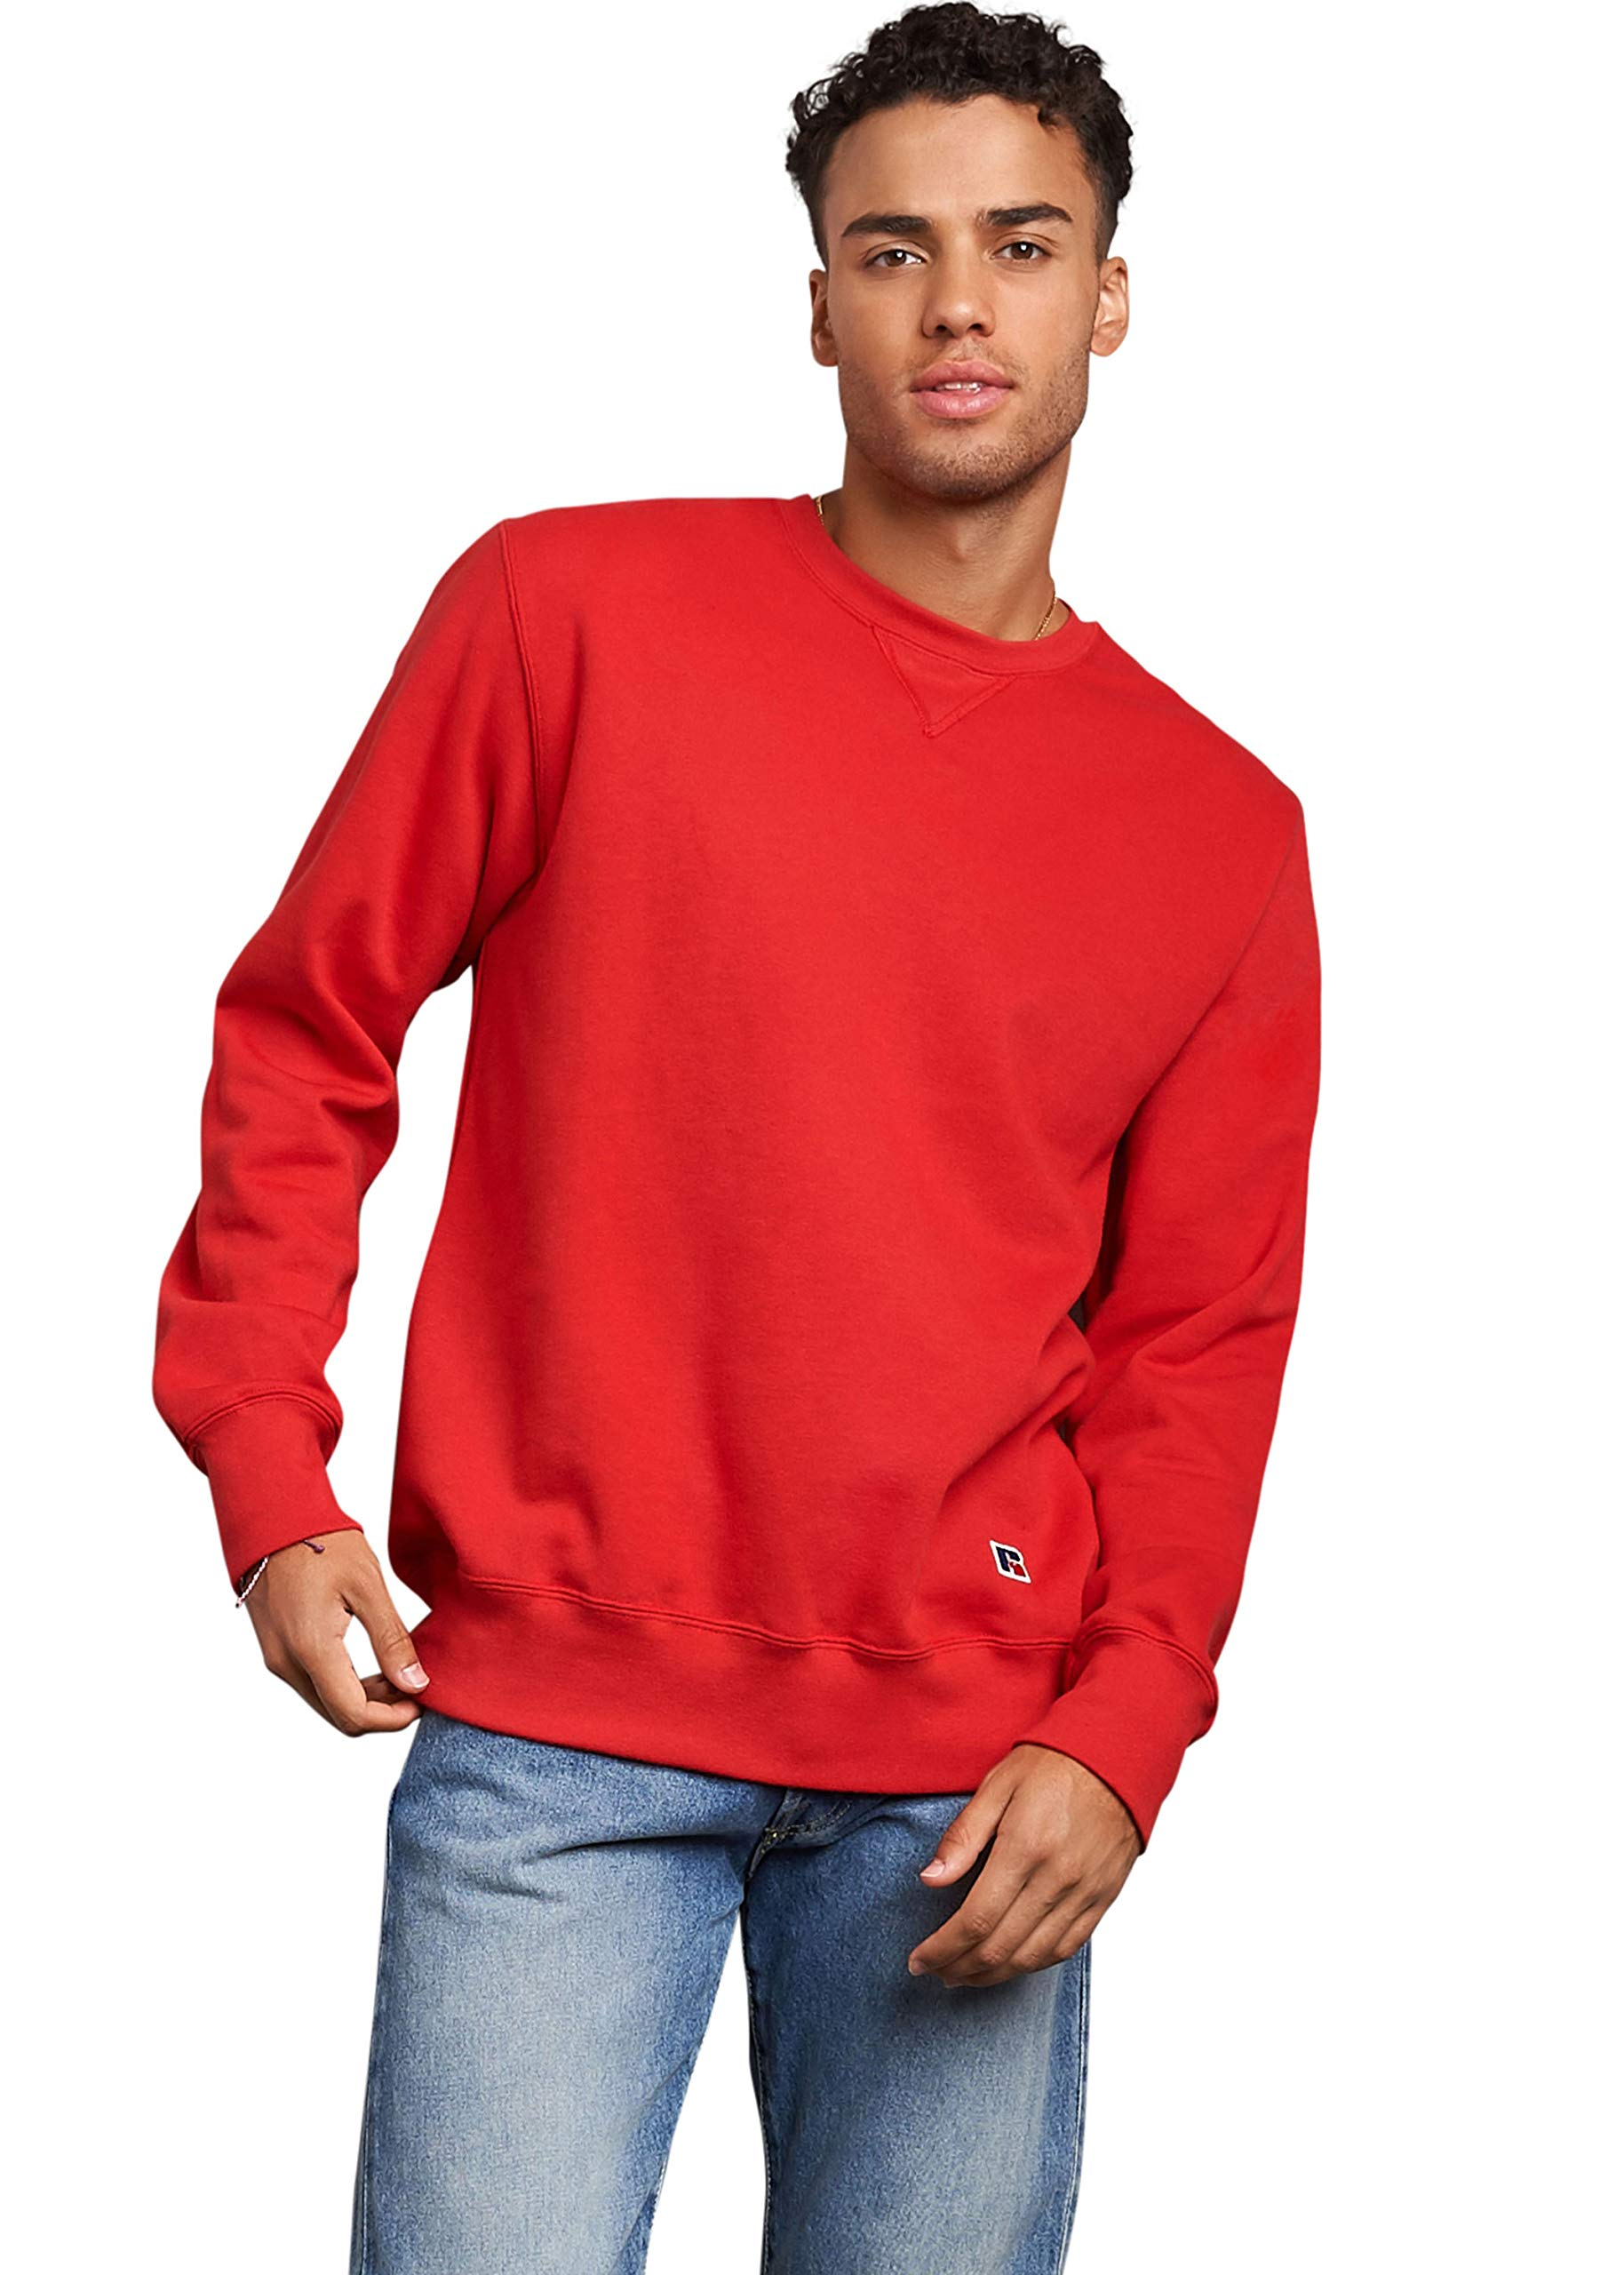 Russell Athletic Men's Cotton Classic Fleece Sweatshirts, Hoodies & Sweatpants